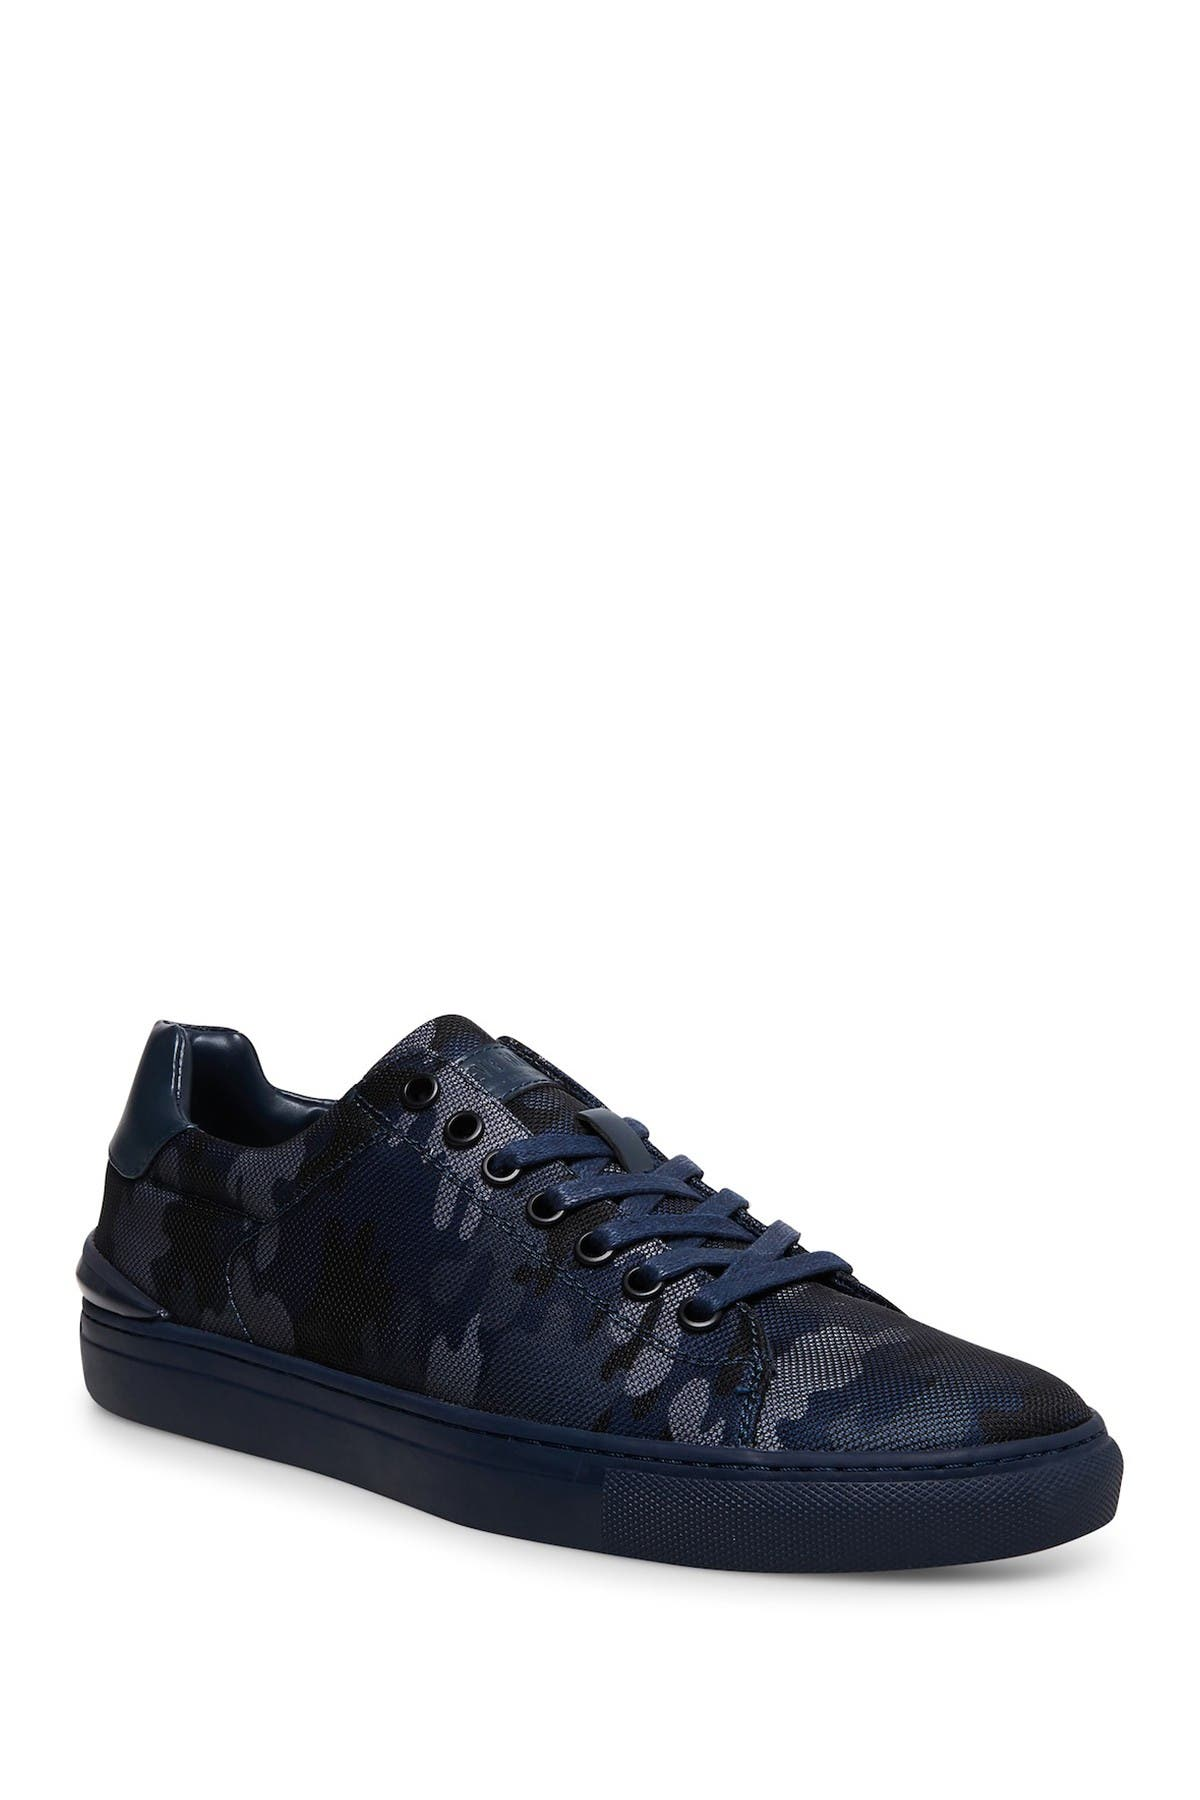 Image of Steve Madden Trig Camo Print Low Top Sneaker